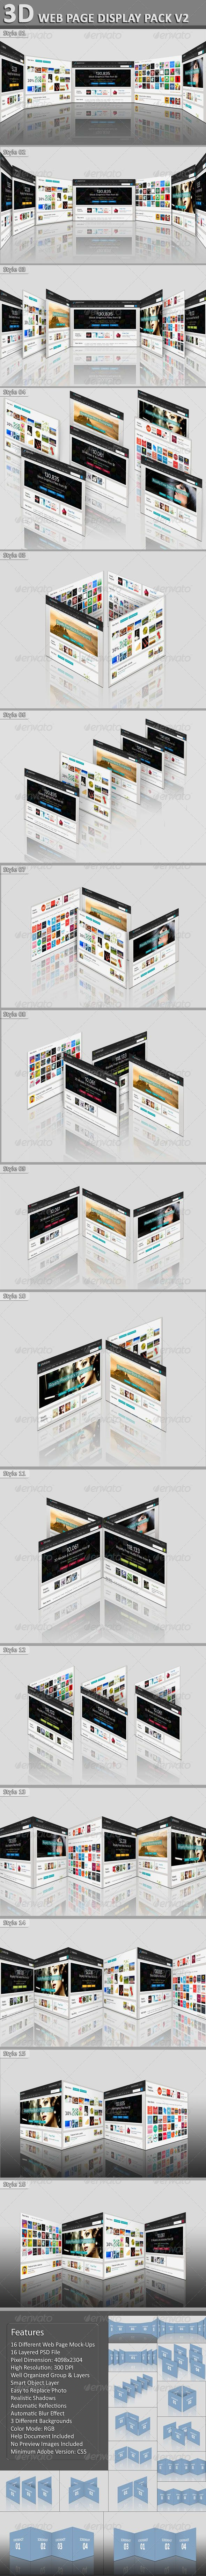 3D Web Page Display Pack V2: The pack includes 16 different web page display mock-ups. 16 PSD file is included in the package. Ad